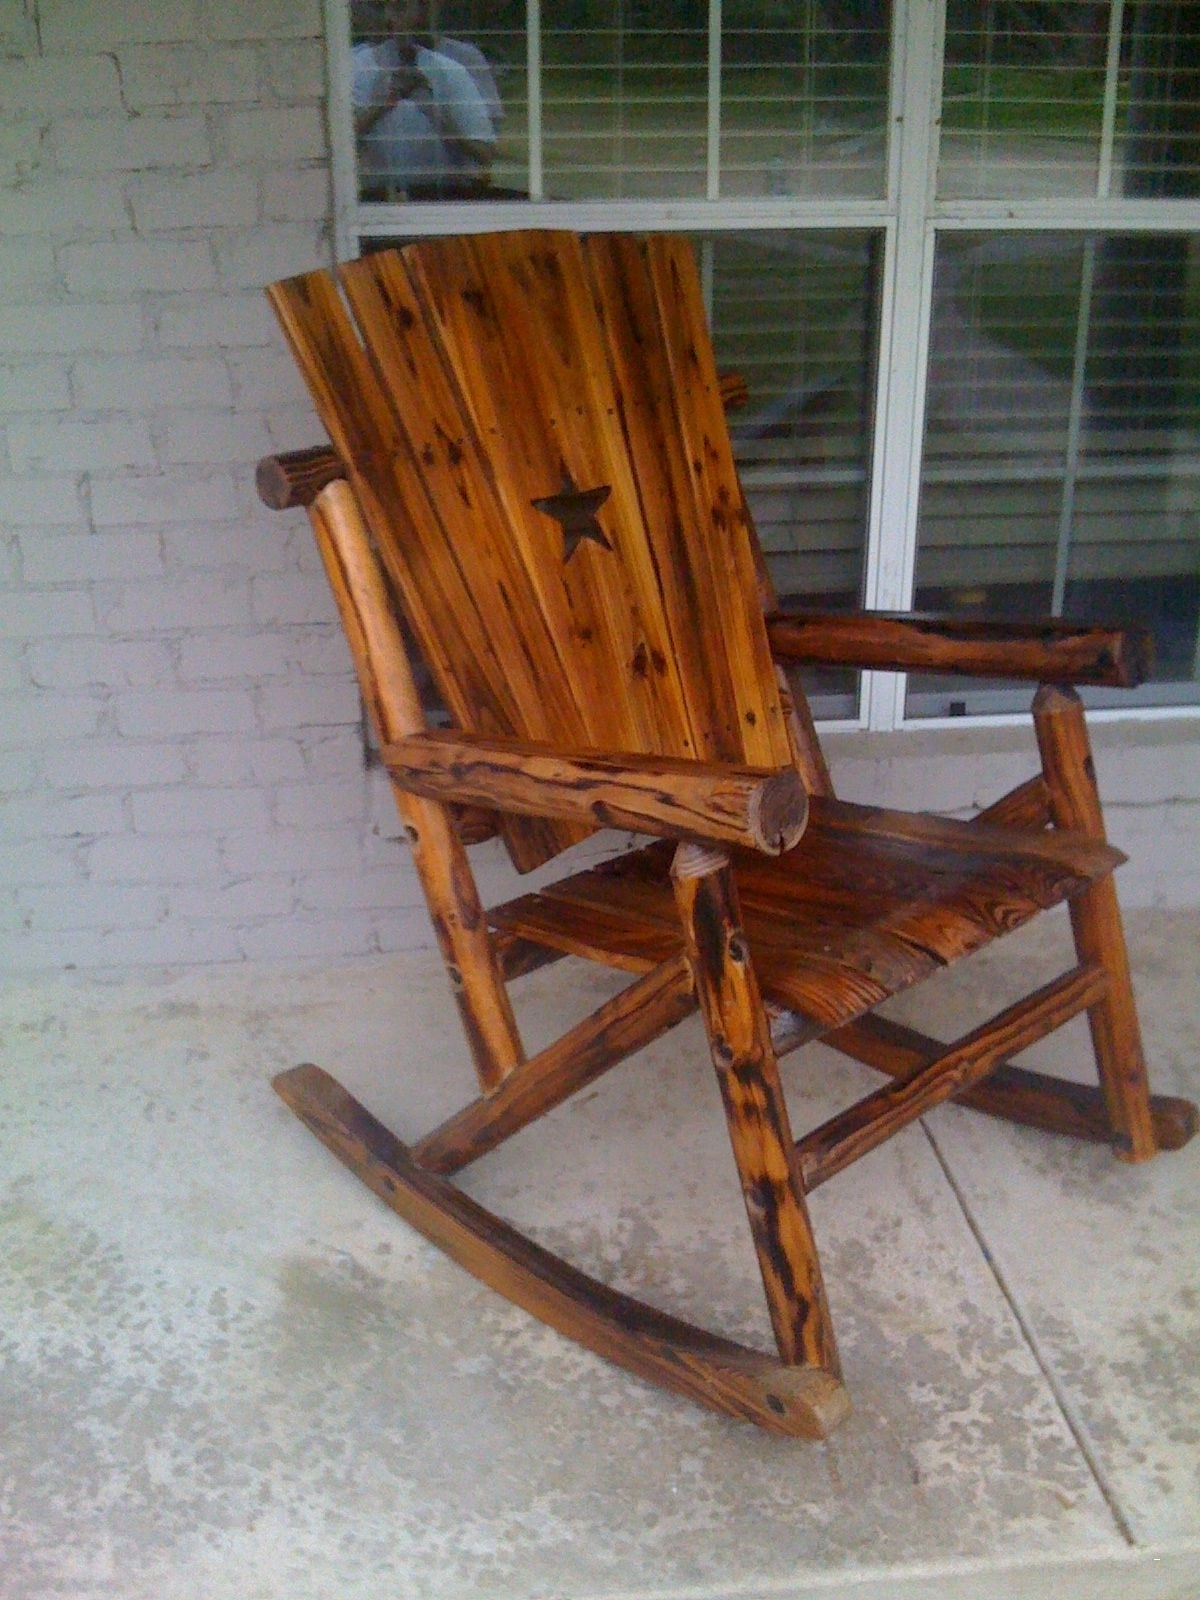 Best Of Wooden Outside Rocking Chairs – Designsolutions Usa Intended For Popular Rocking Chairs For Outside (View 3 of 15)